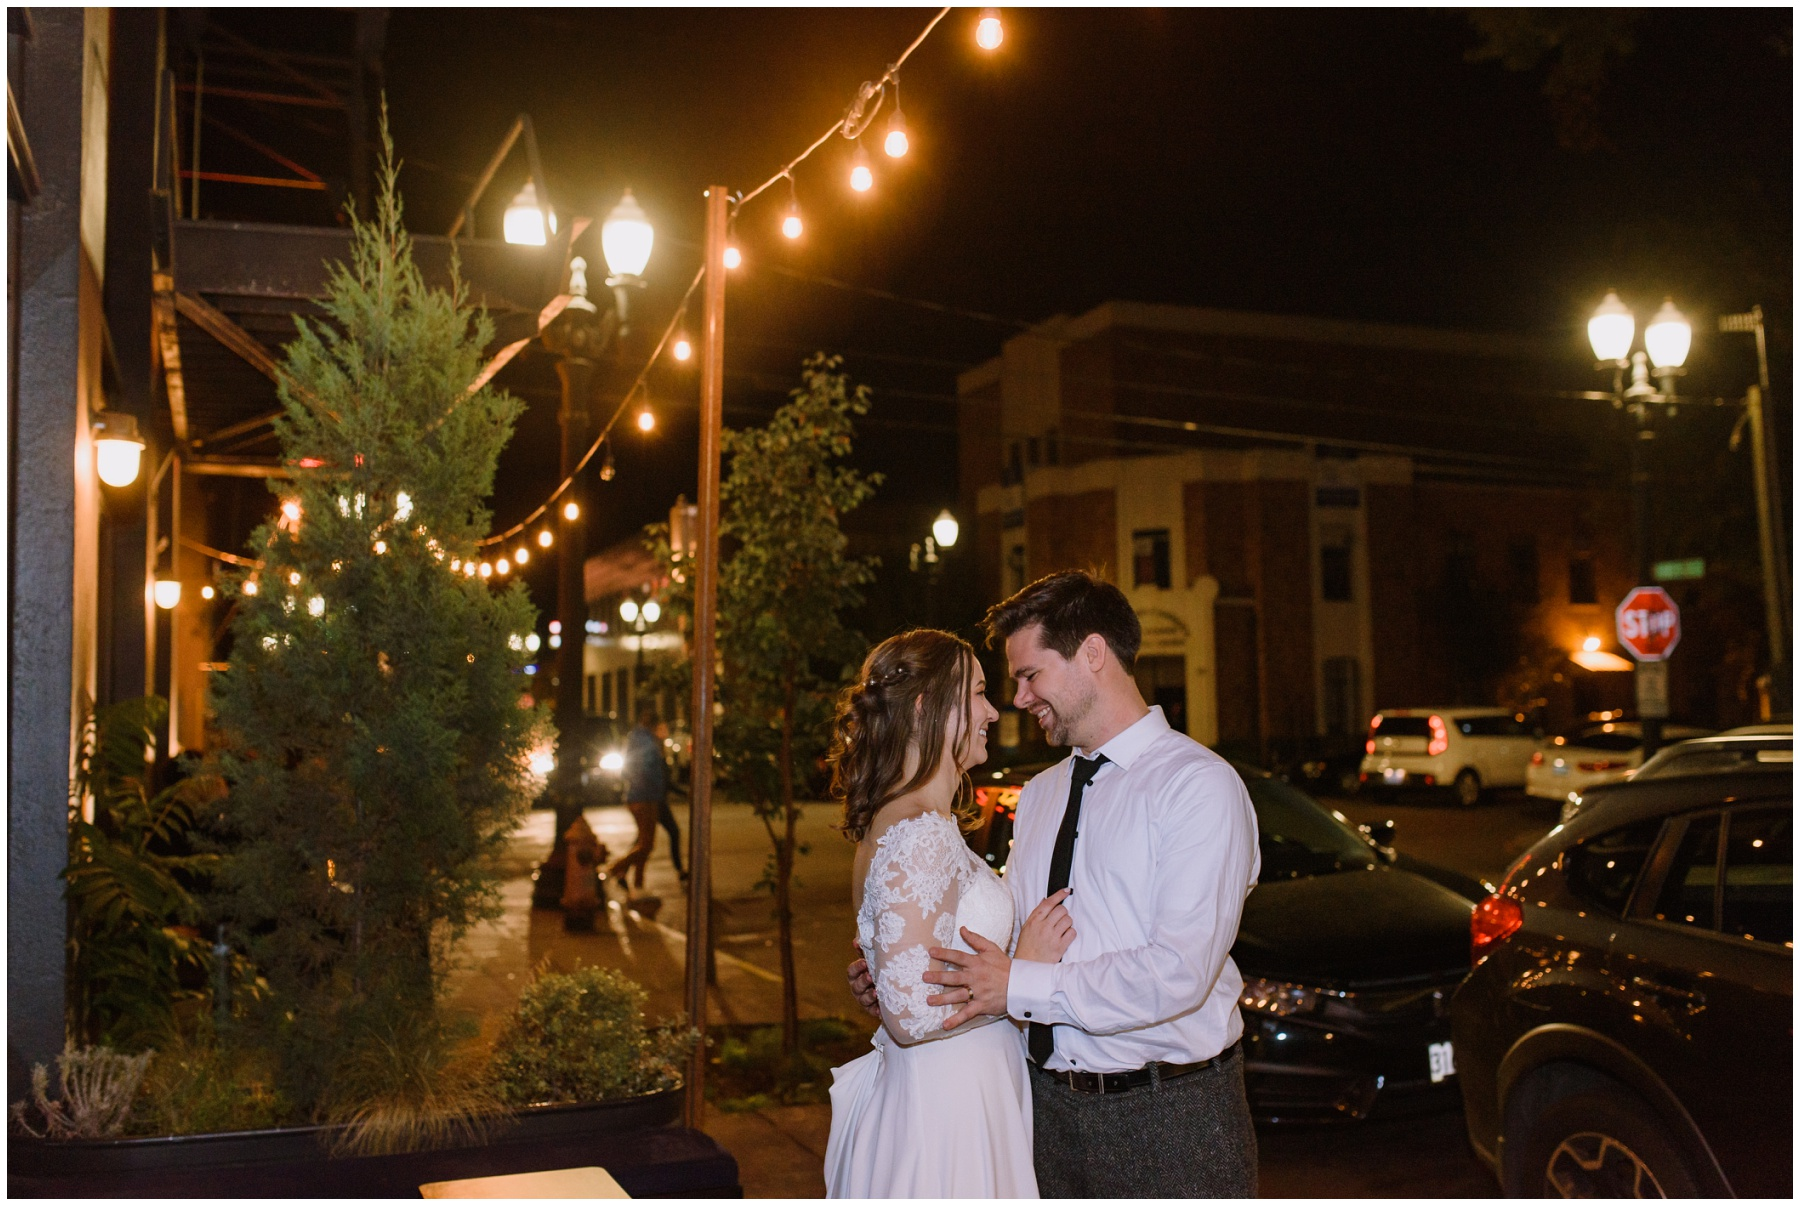 A bride and groom looking into each other's eyes at the Evergreen in Portland at night.